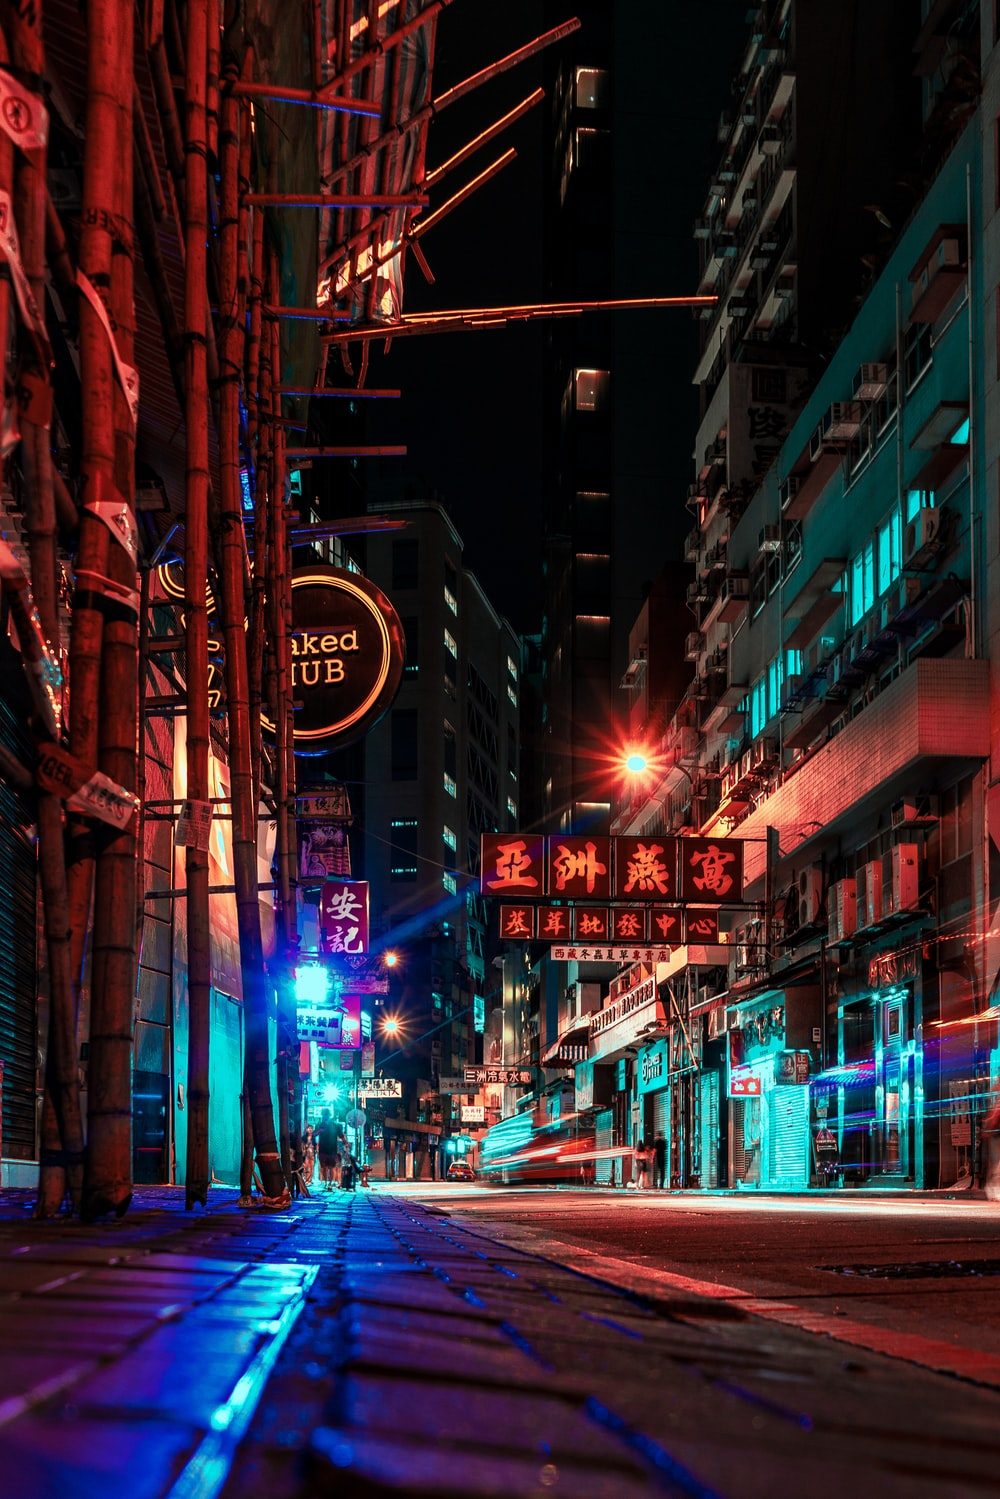 20 Best Free Night City Pictures On Unsplash